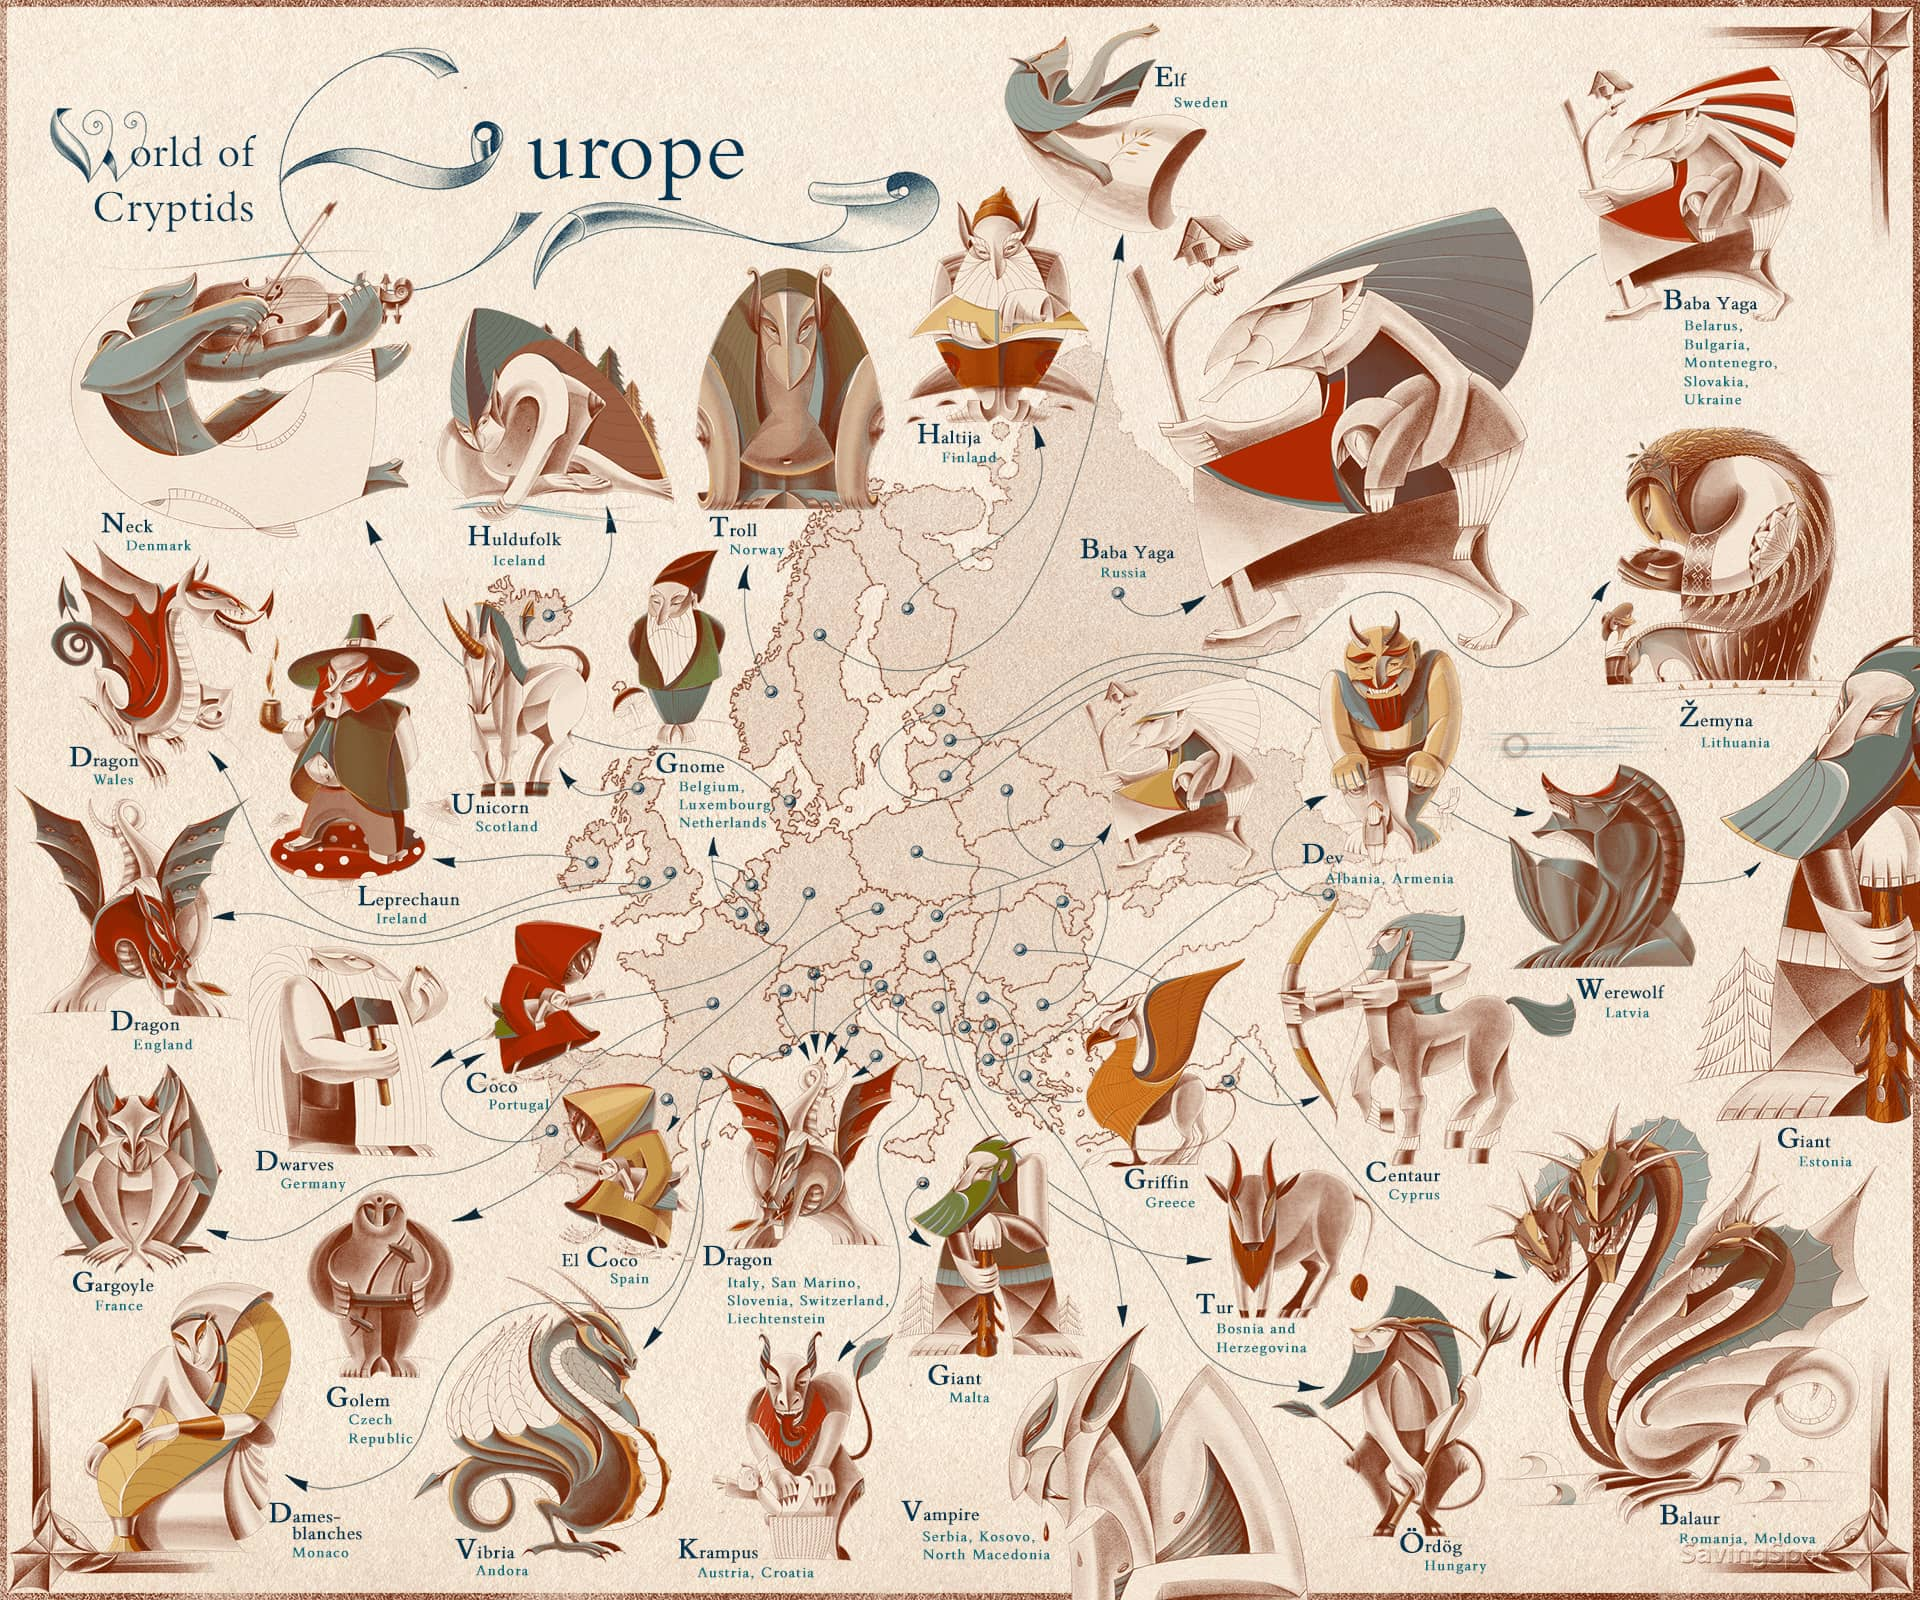 Europe Most Famous Mythical Creature